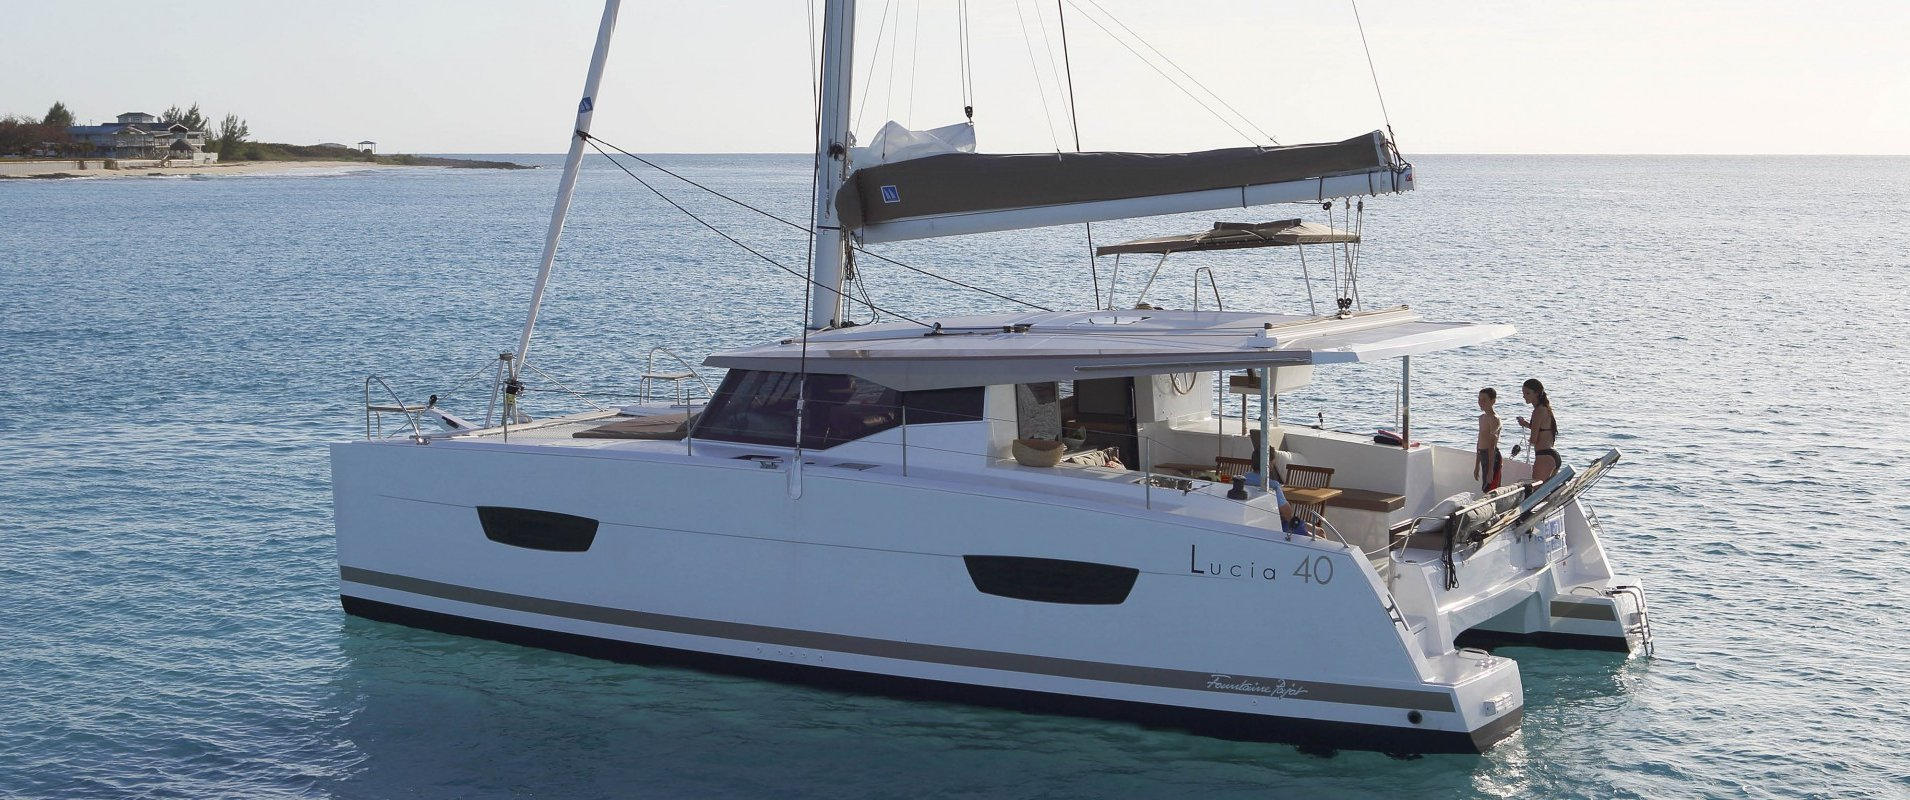 Fountaine Pajot Lucia 40 (Relax Planet)  - 0